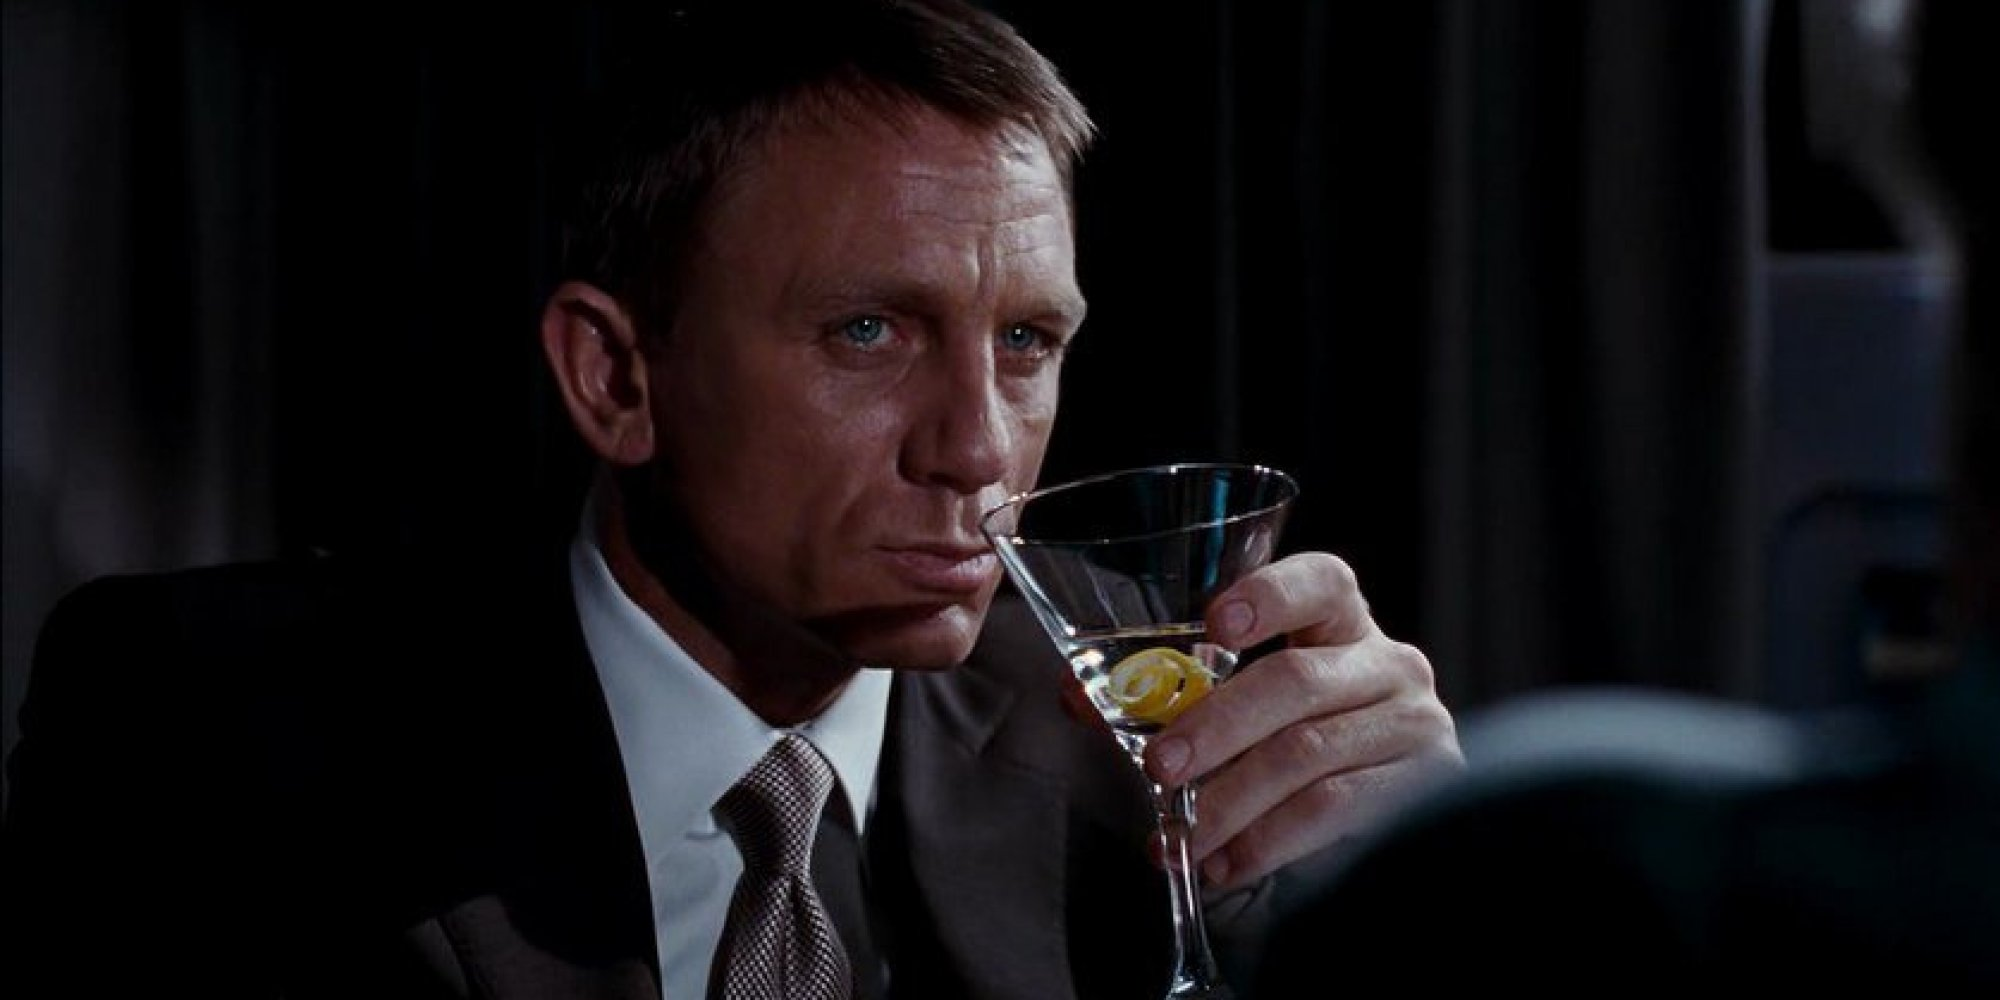 James bond martini casino royale filming locations for casino royale